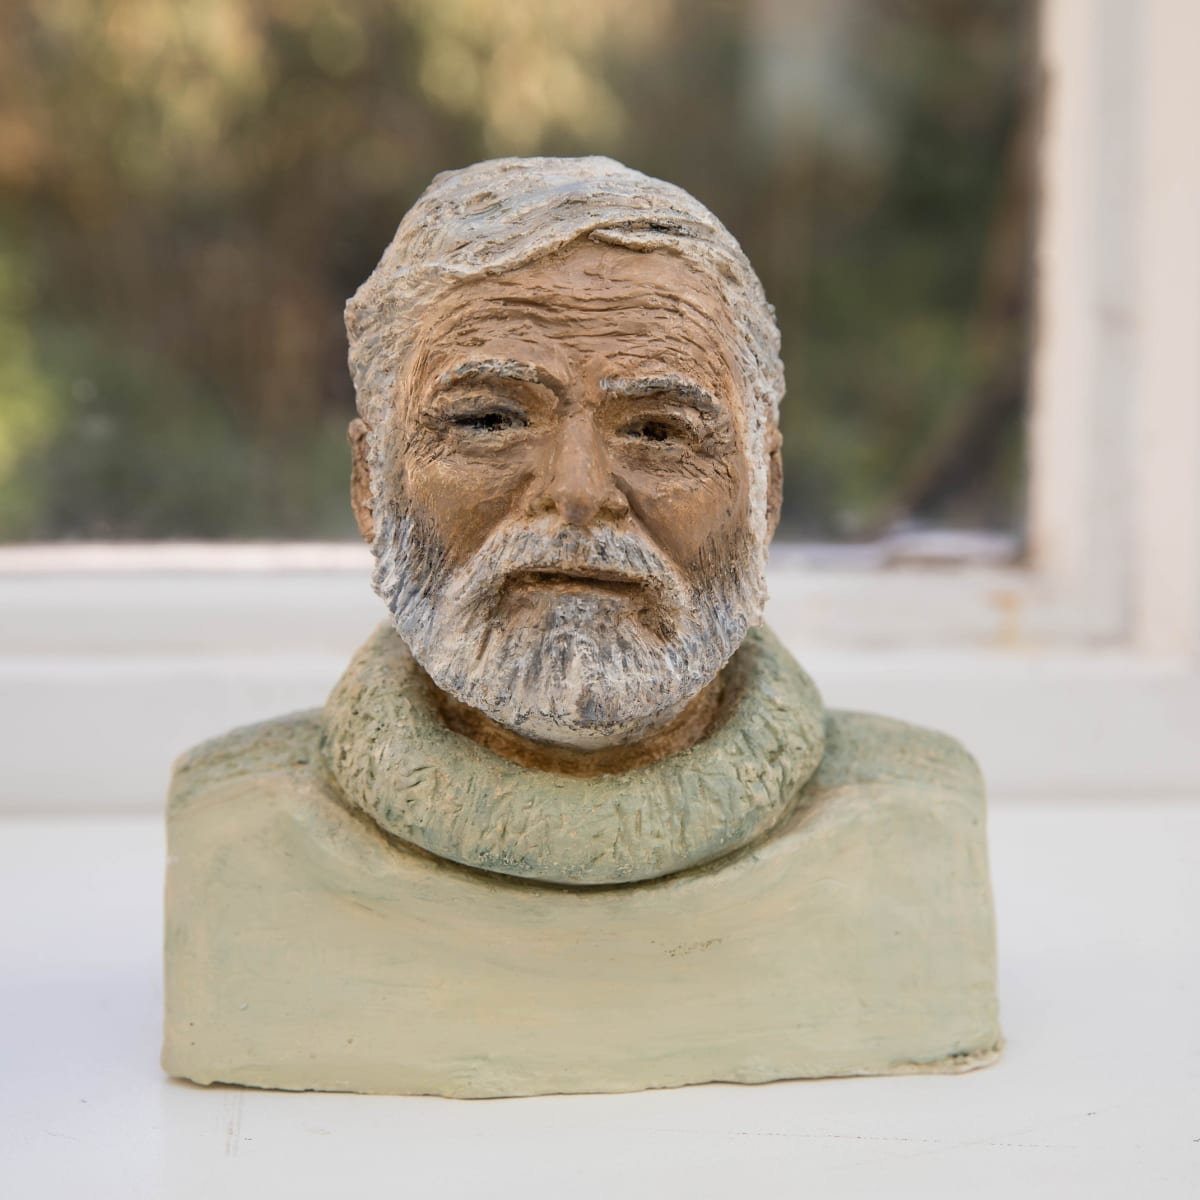 Nicole Farhi Ernest Hemingway ciment fondu and acrylic; hand-painted bronze casts available to purchase 18 x 18 x 8 cm edition of 7 + 3 APs